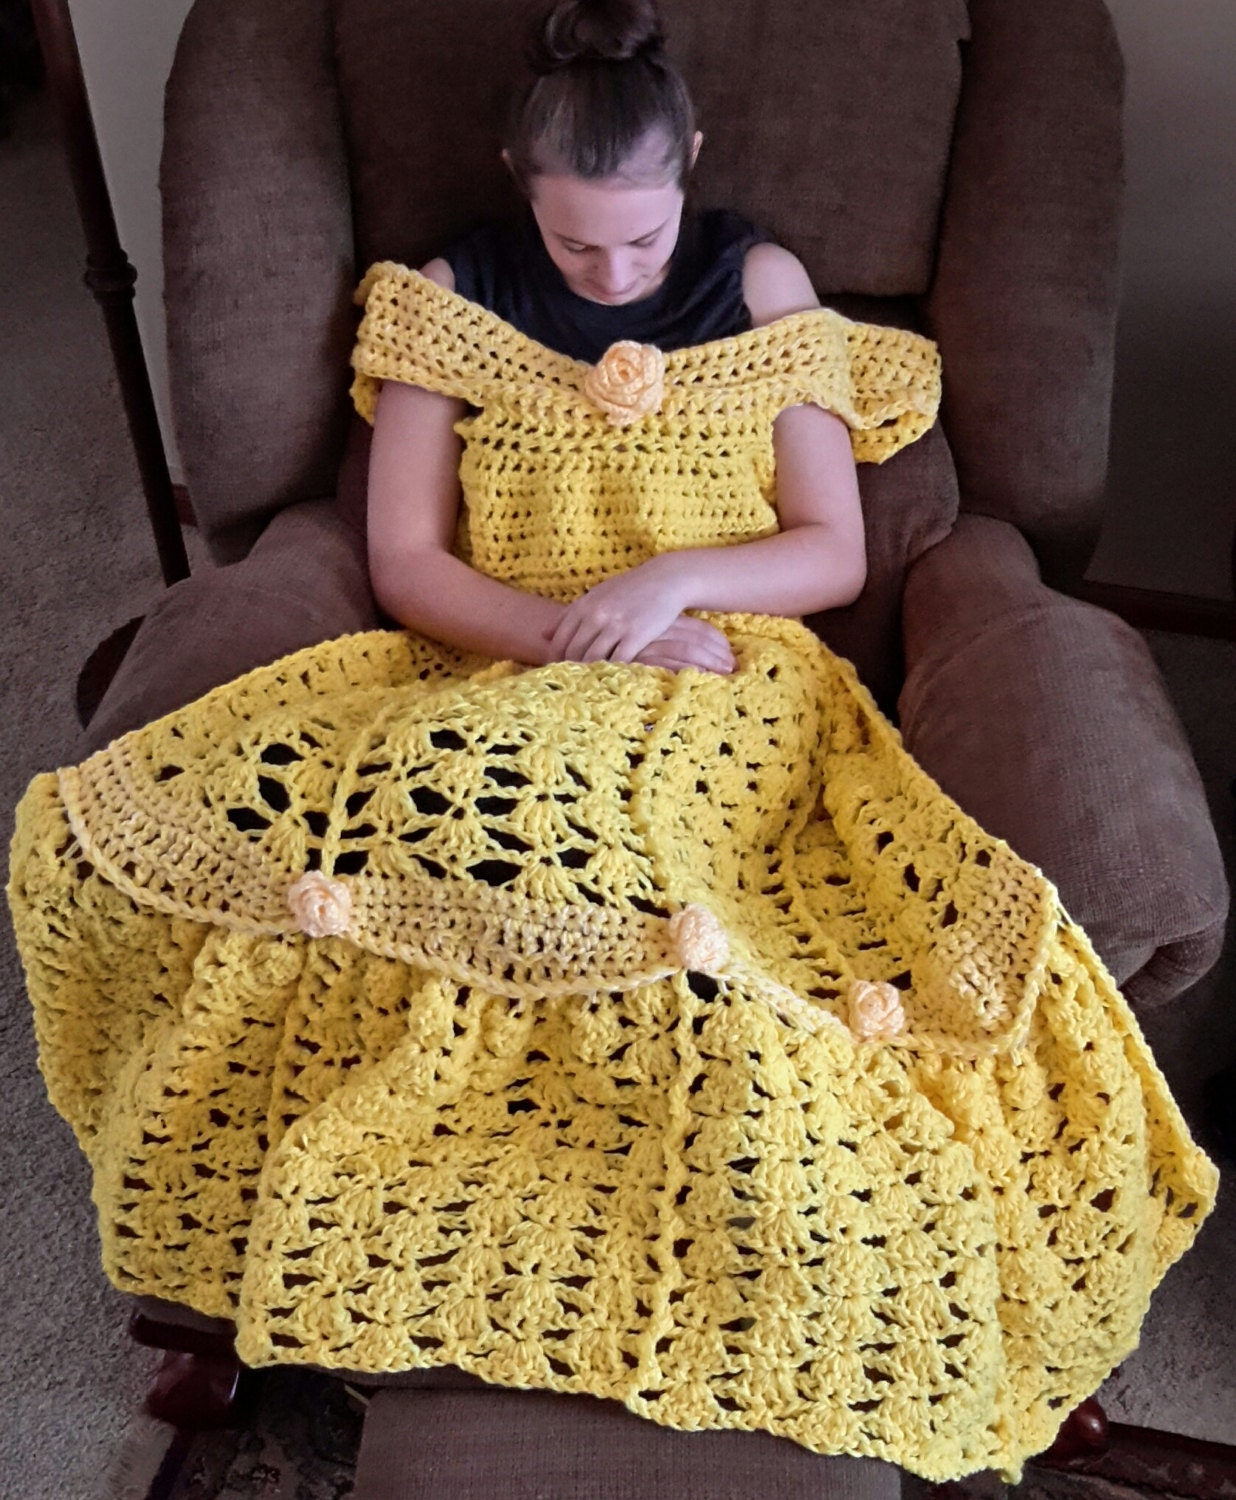 Beautiful crochet dresses for kids trendy - Princess Dress Blanket Yellow Crochet Pattern Digital Download Pdf Only Toddler